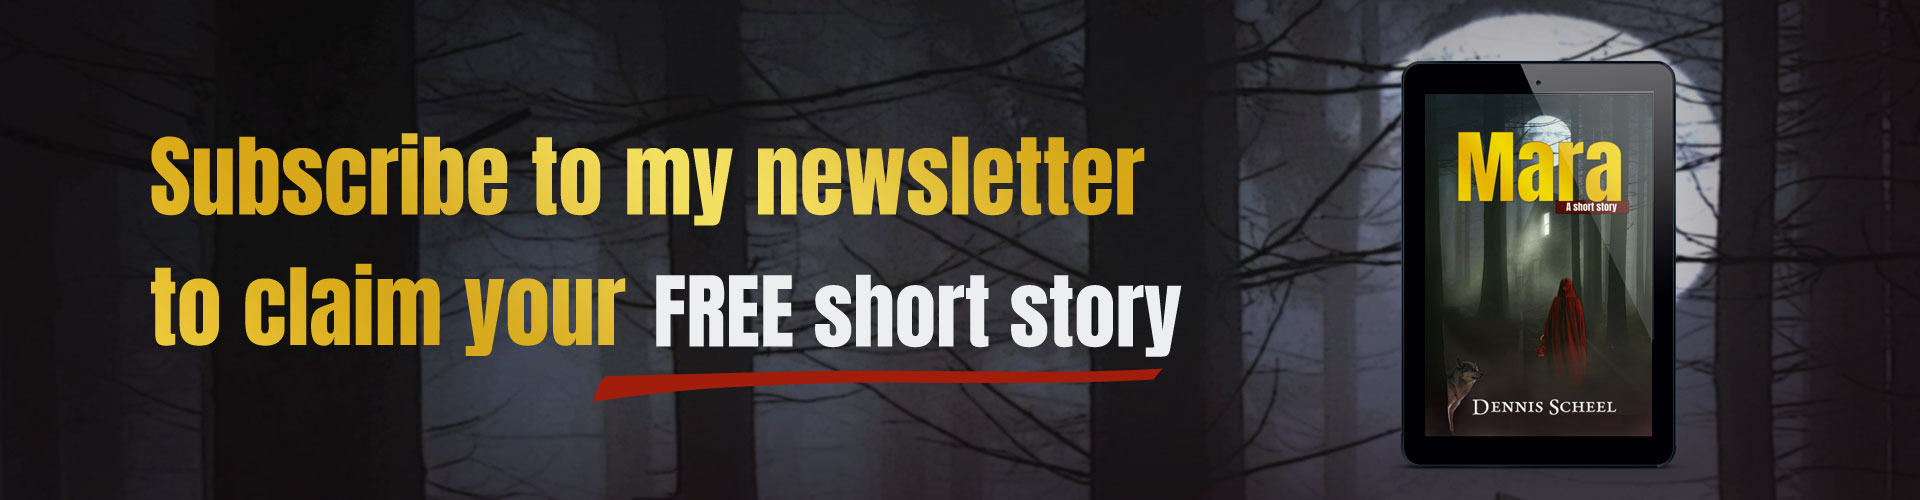 Subscribe to my newsletter to claim your free short story